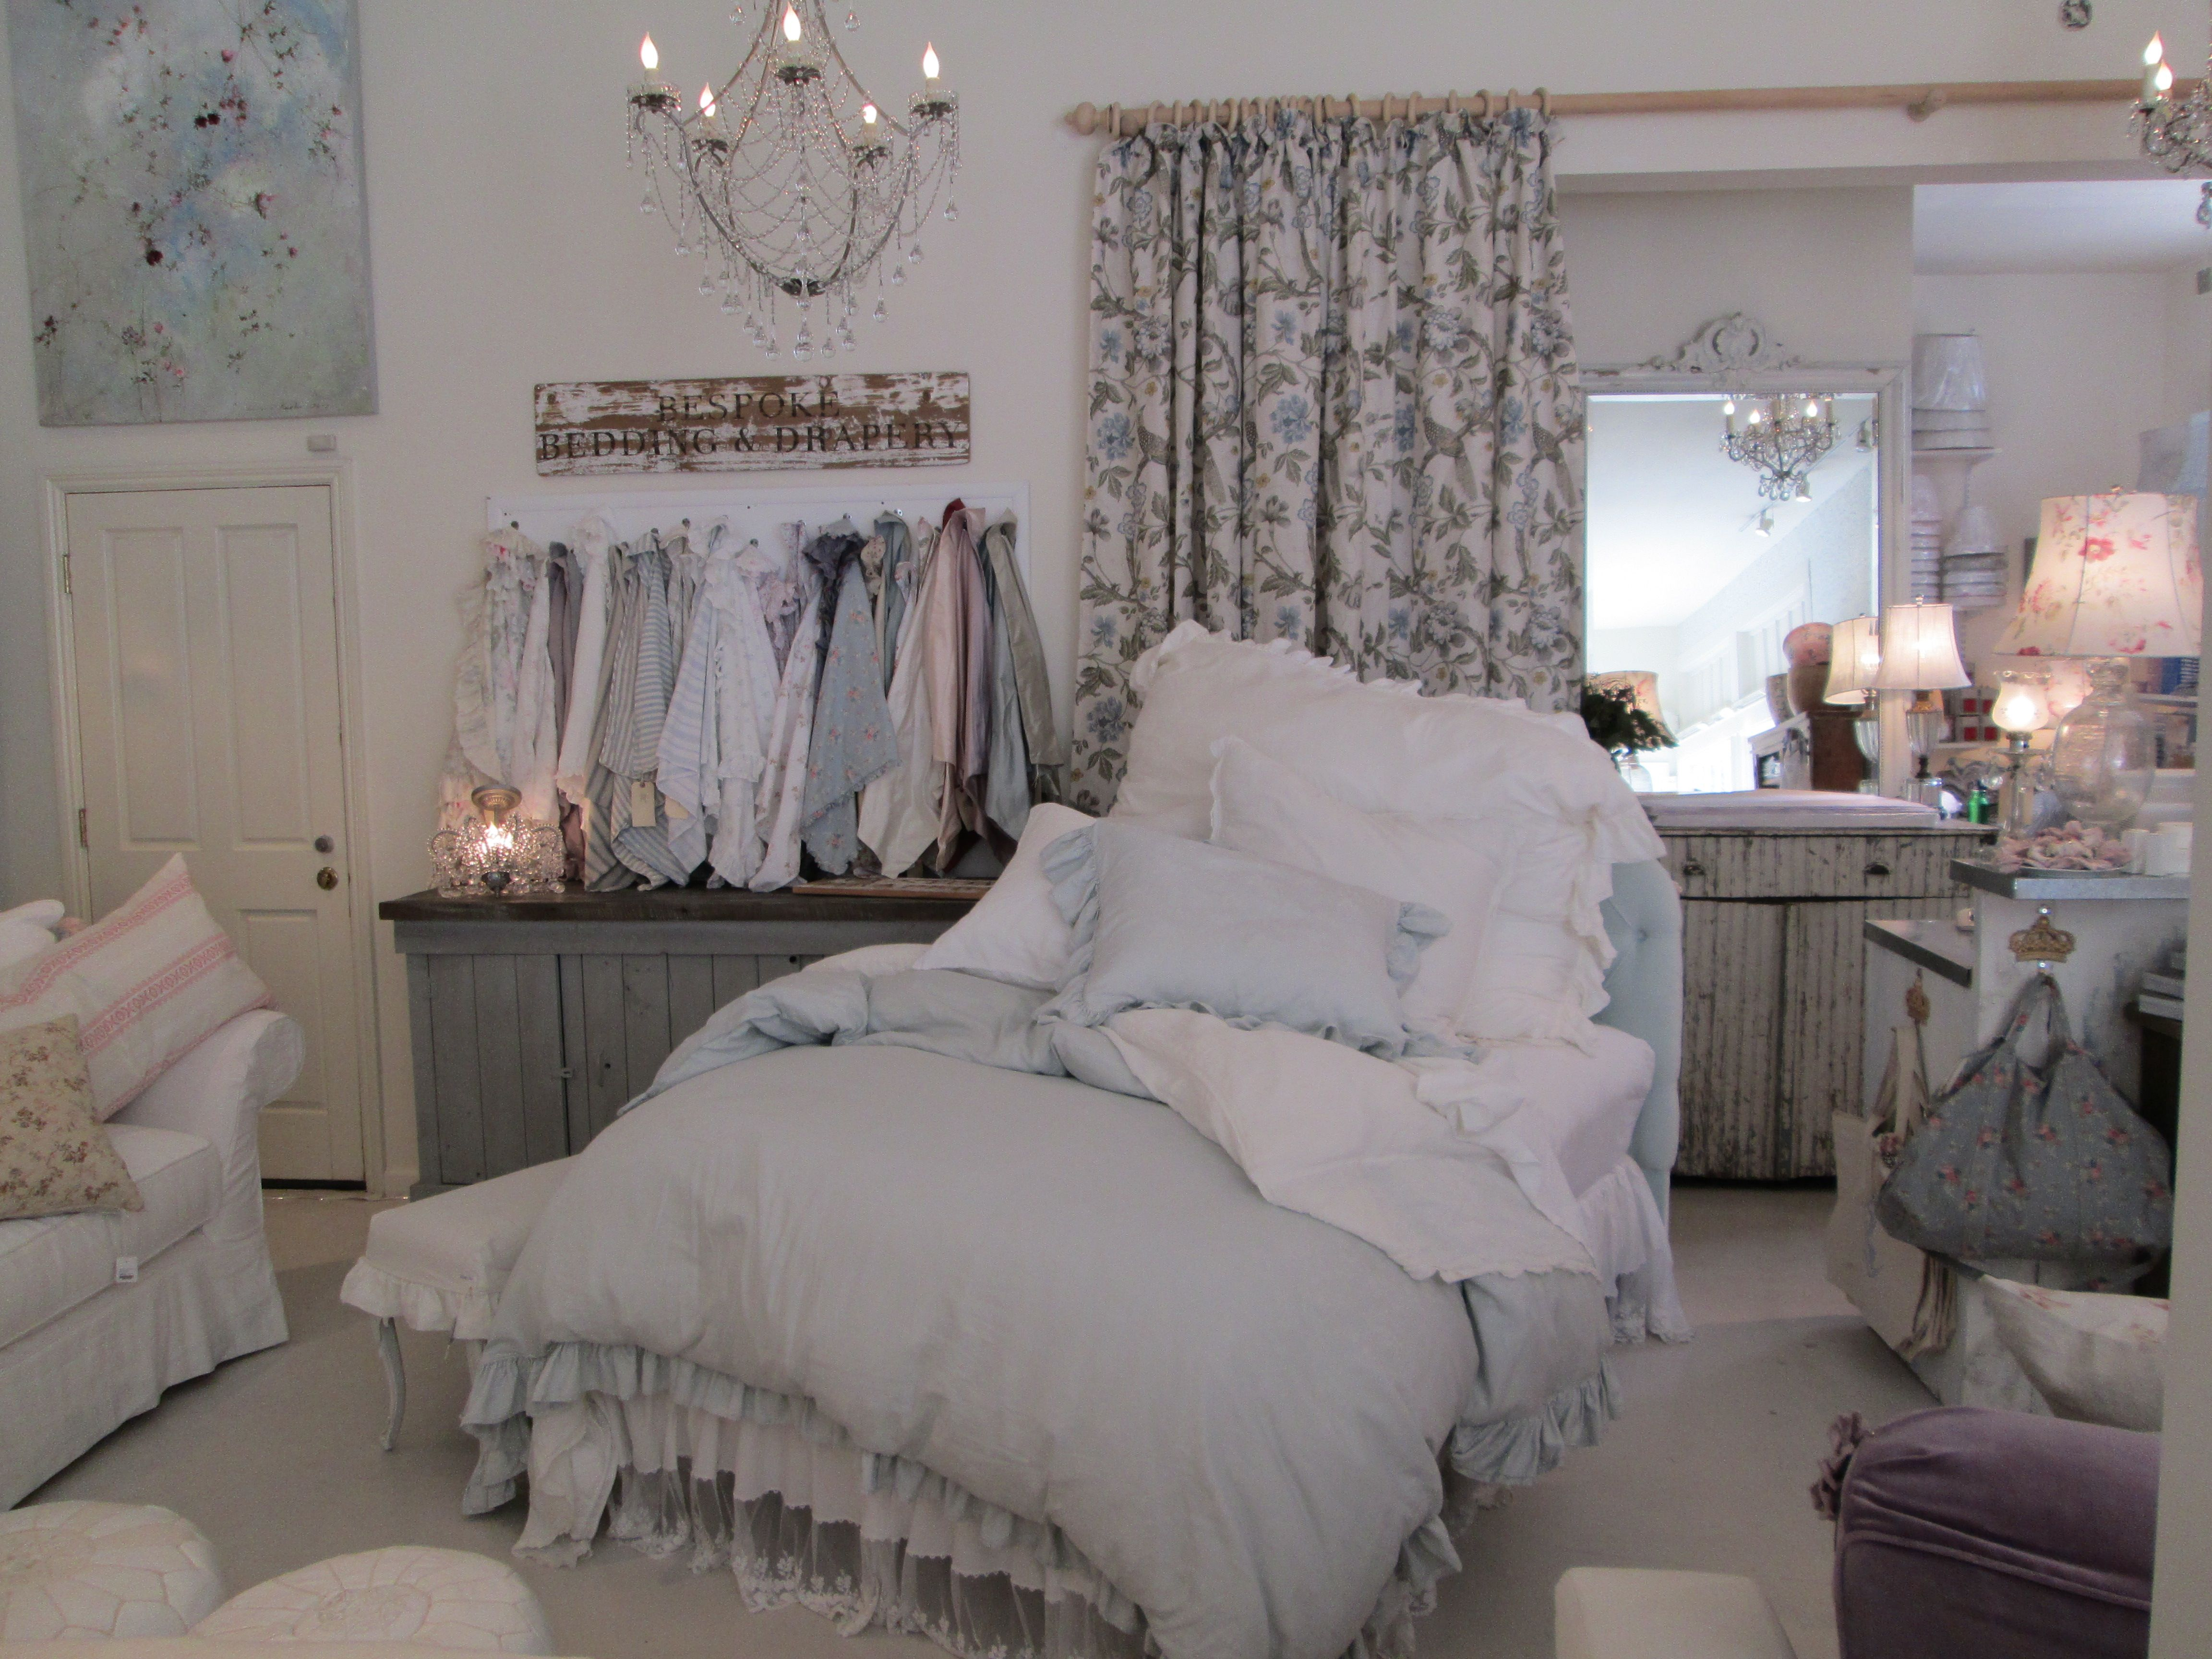 style bedding living products related bedrooms shop cottages rooms decorating pictures design cottage hgtv bedroom ideas